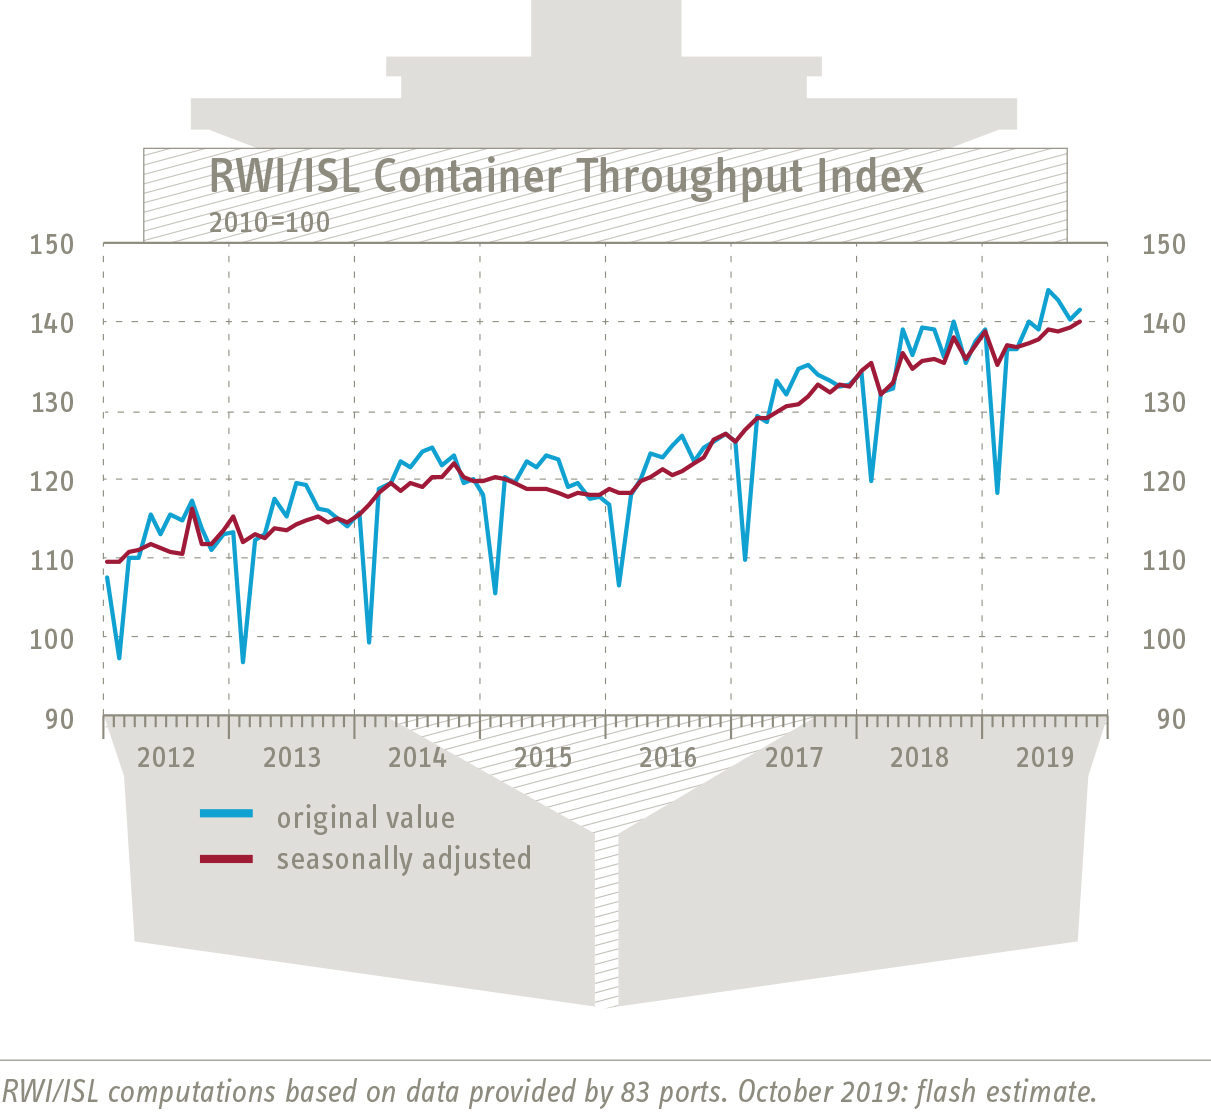 RWI/ISL Container Handling Index: World trade returns to growth